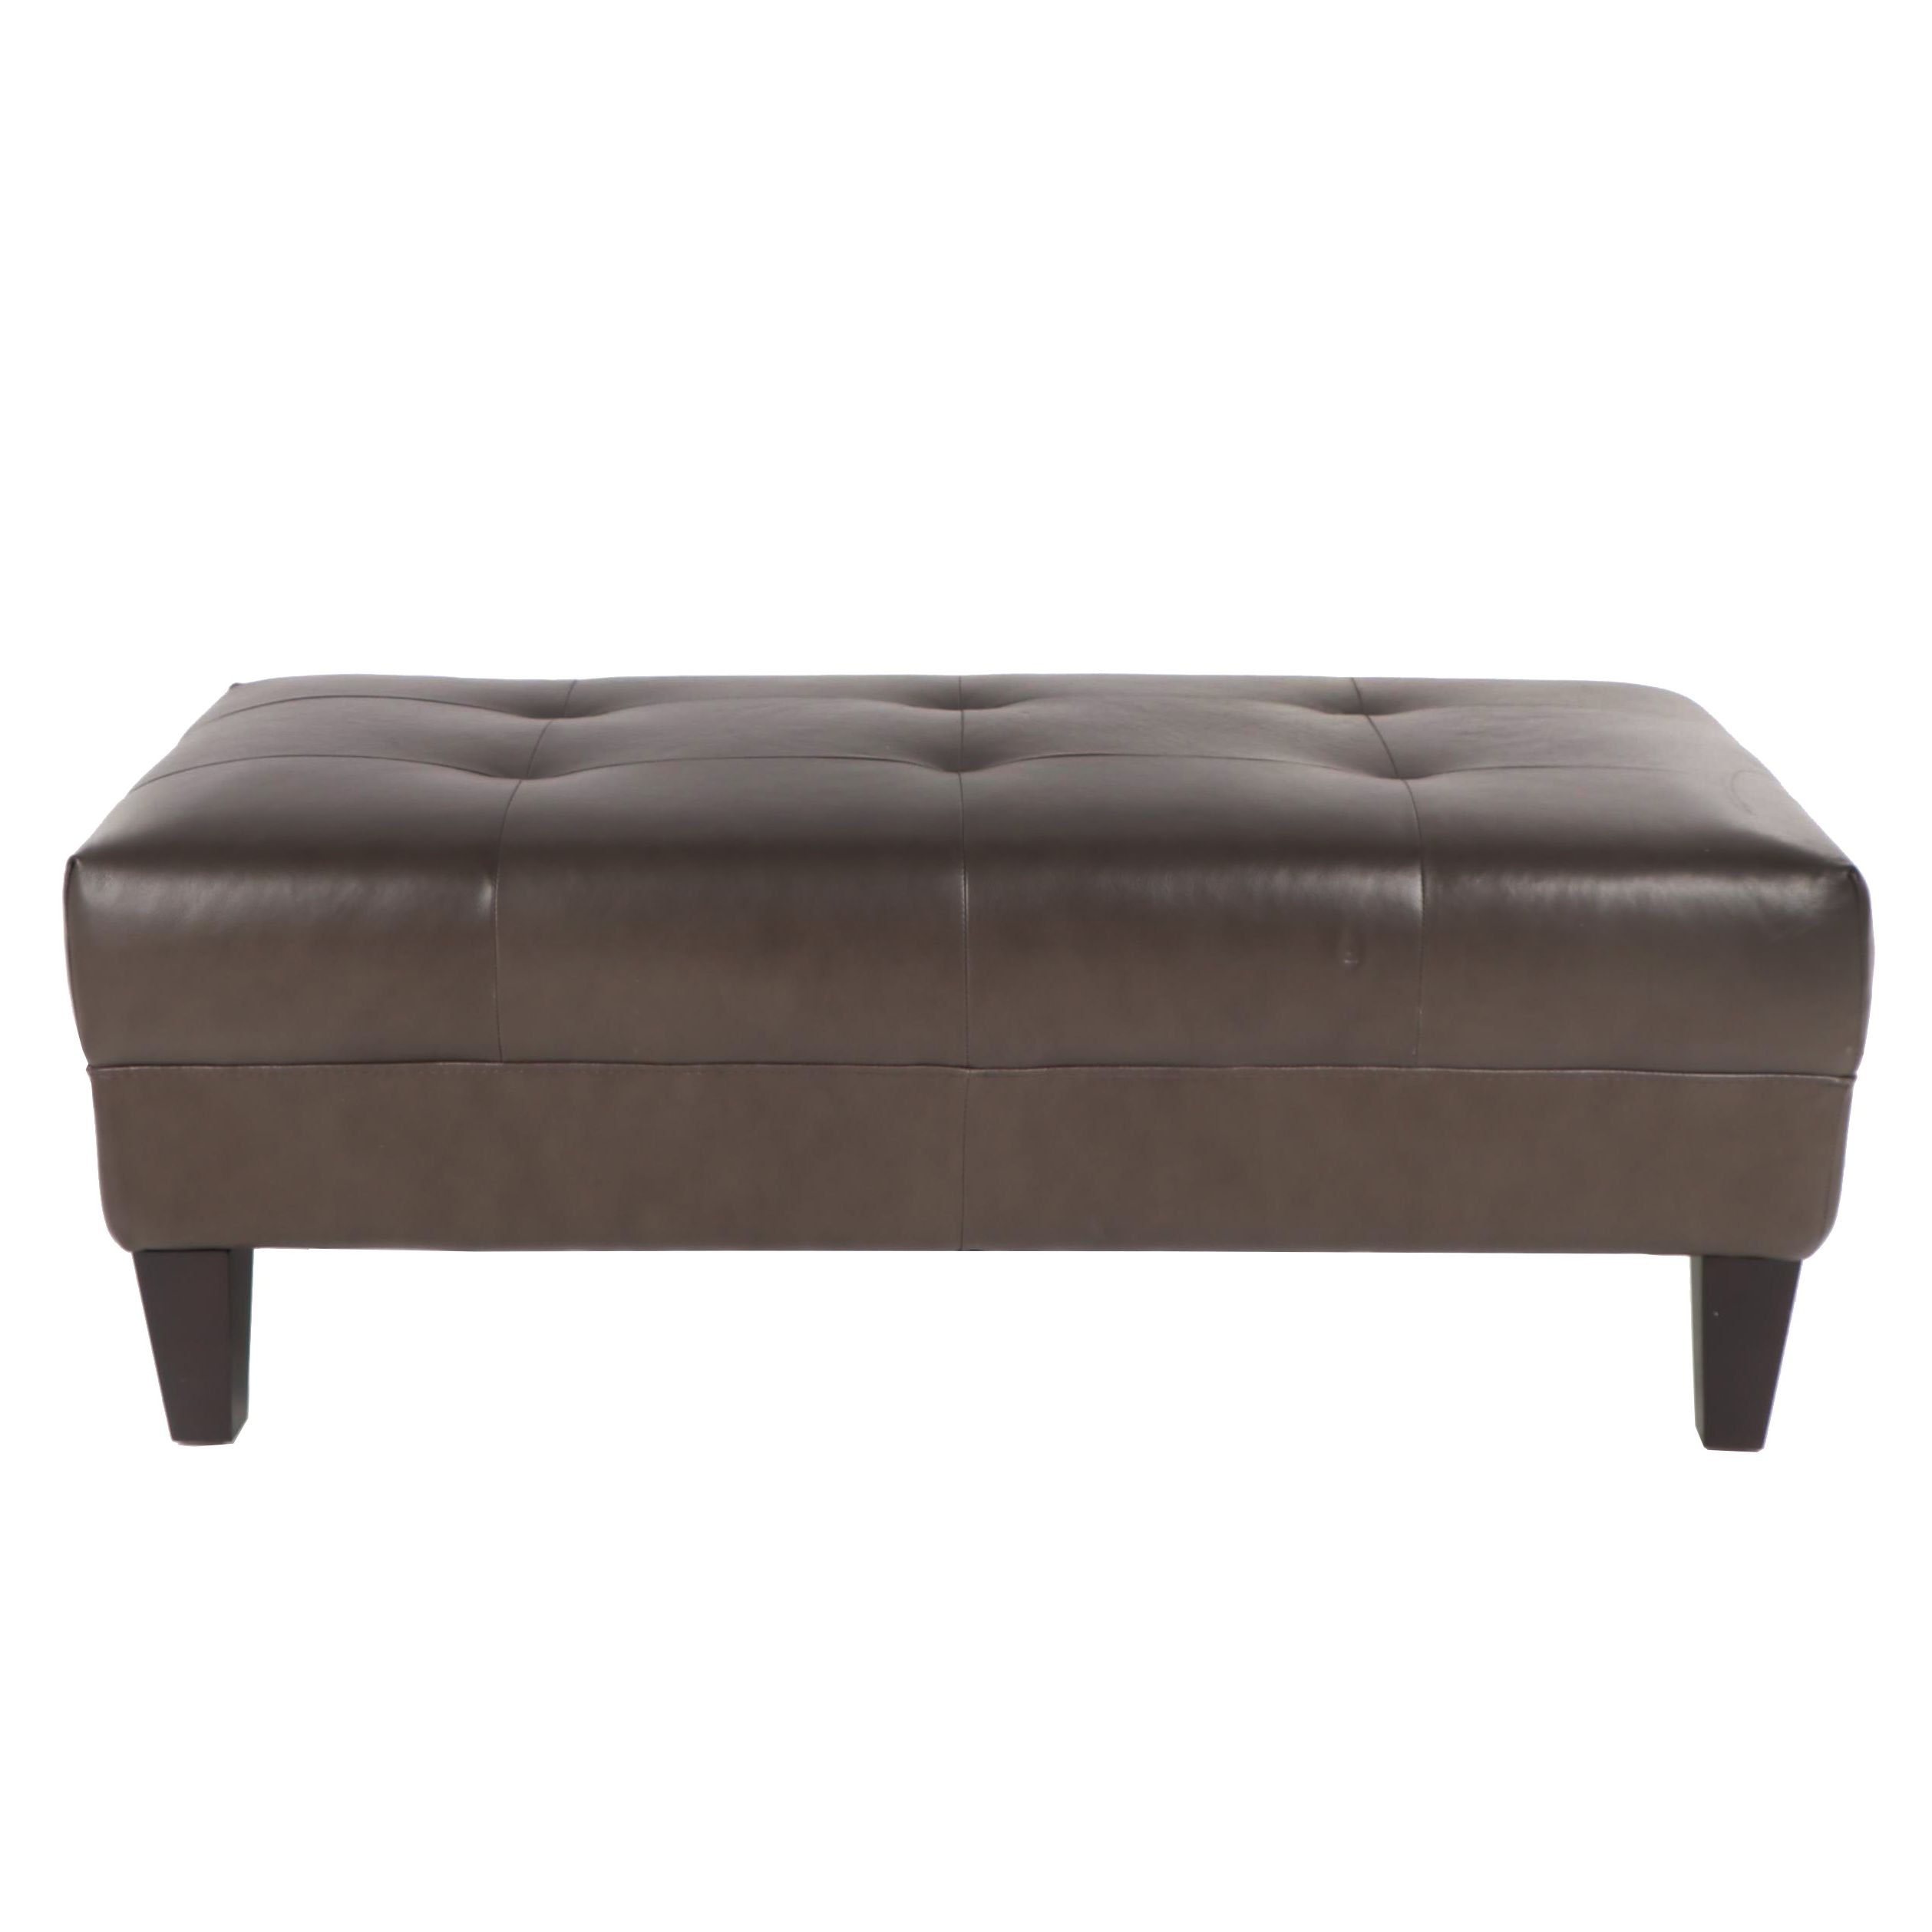 Faux Leather Bench, 21st Century